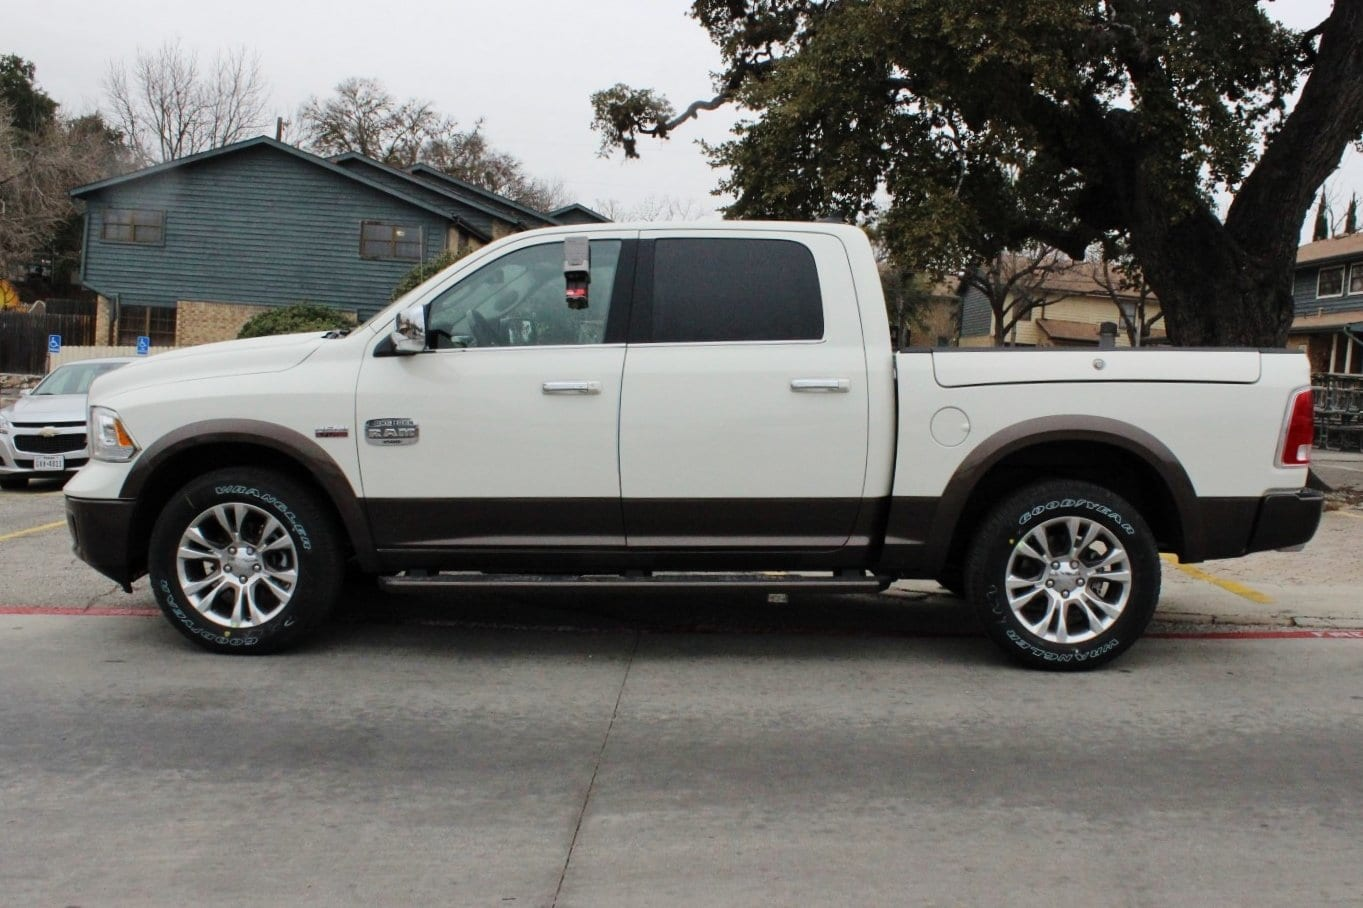 2018 Ram 1500 Crew Cab 4x4, Pickup #TS103592 - photo 4